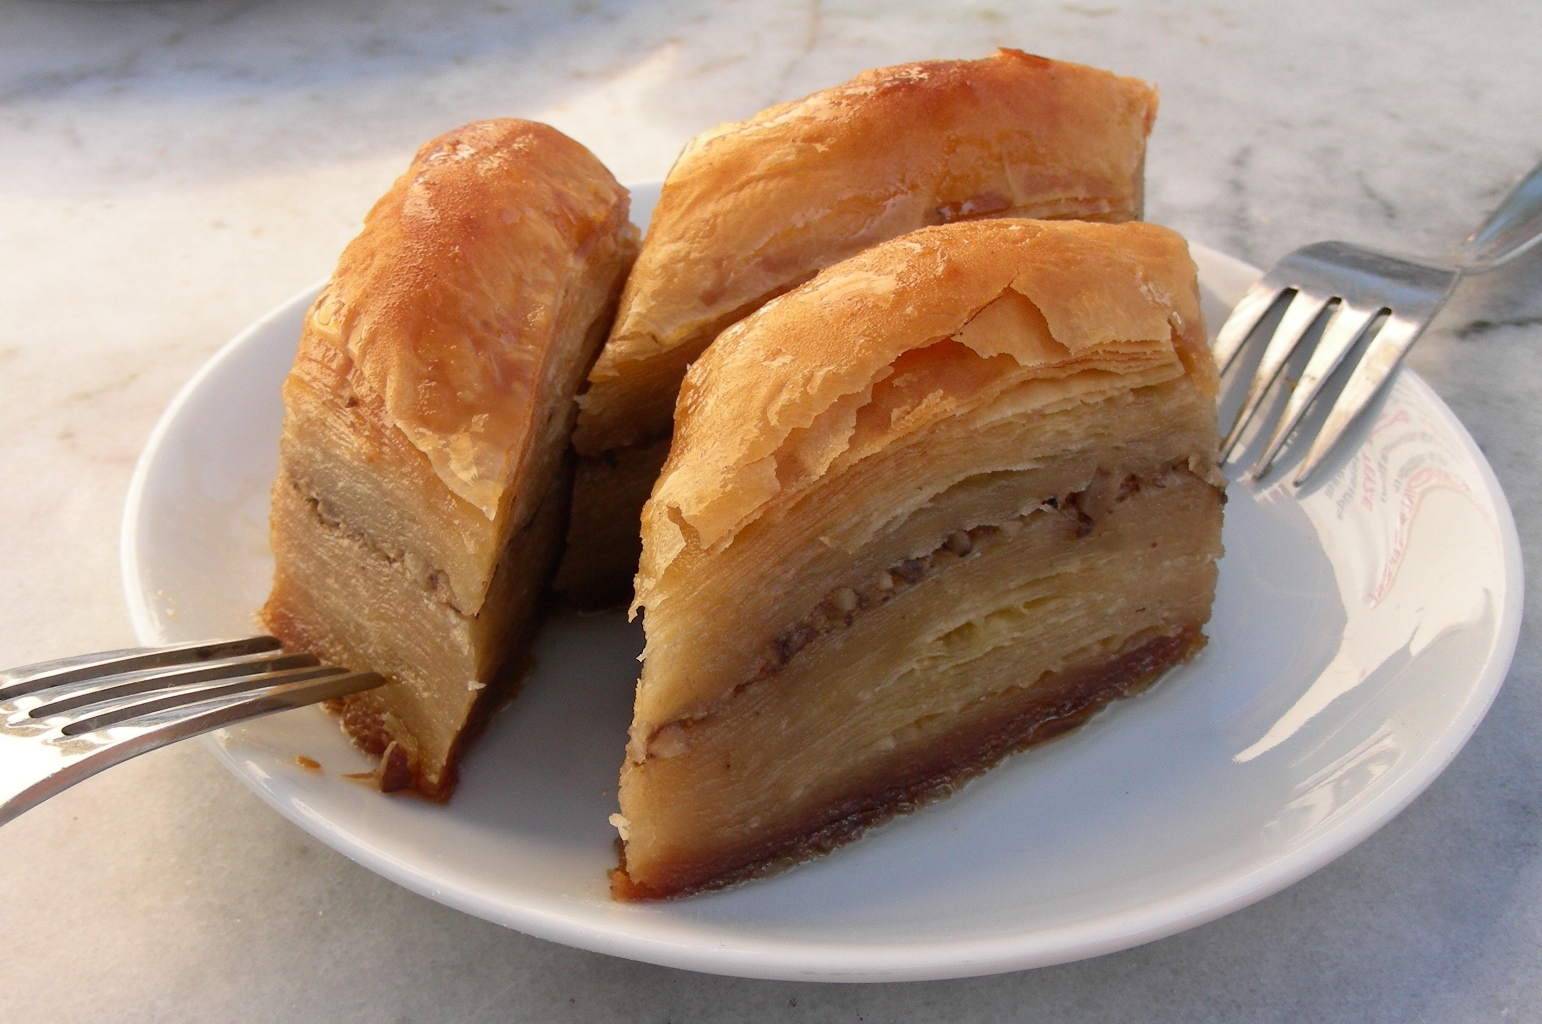 baklava e g pastry its texture seems to be similar to that of moon ...